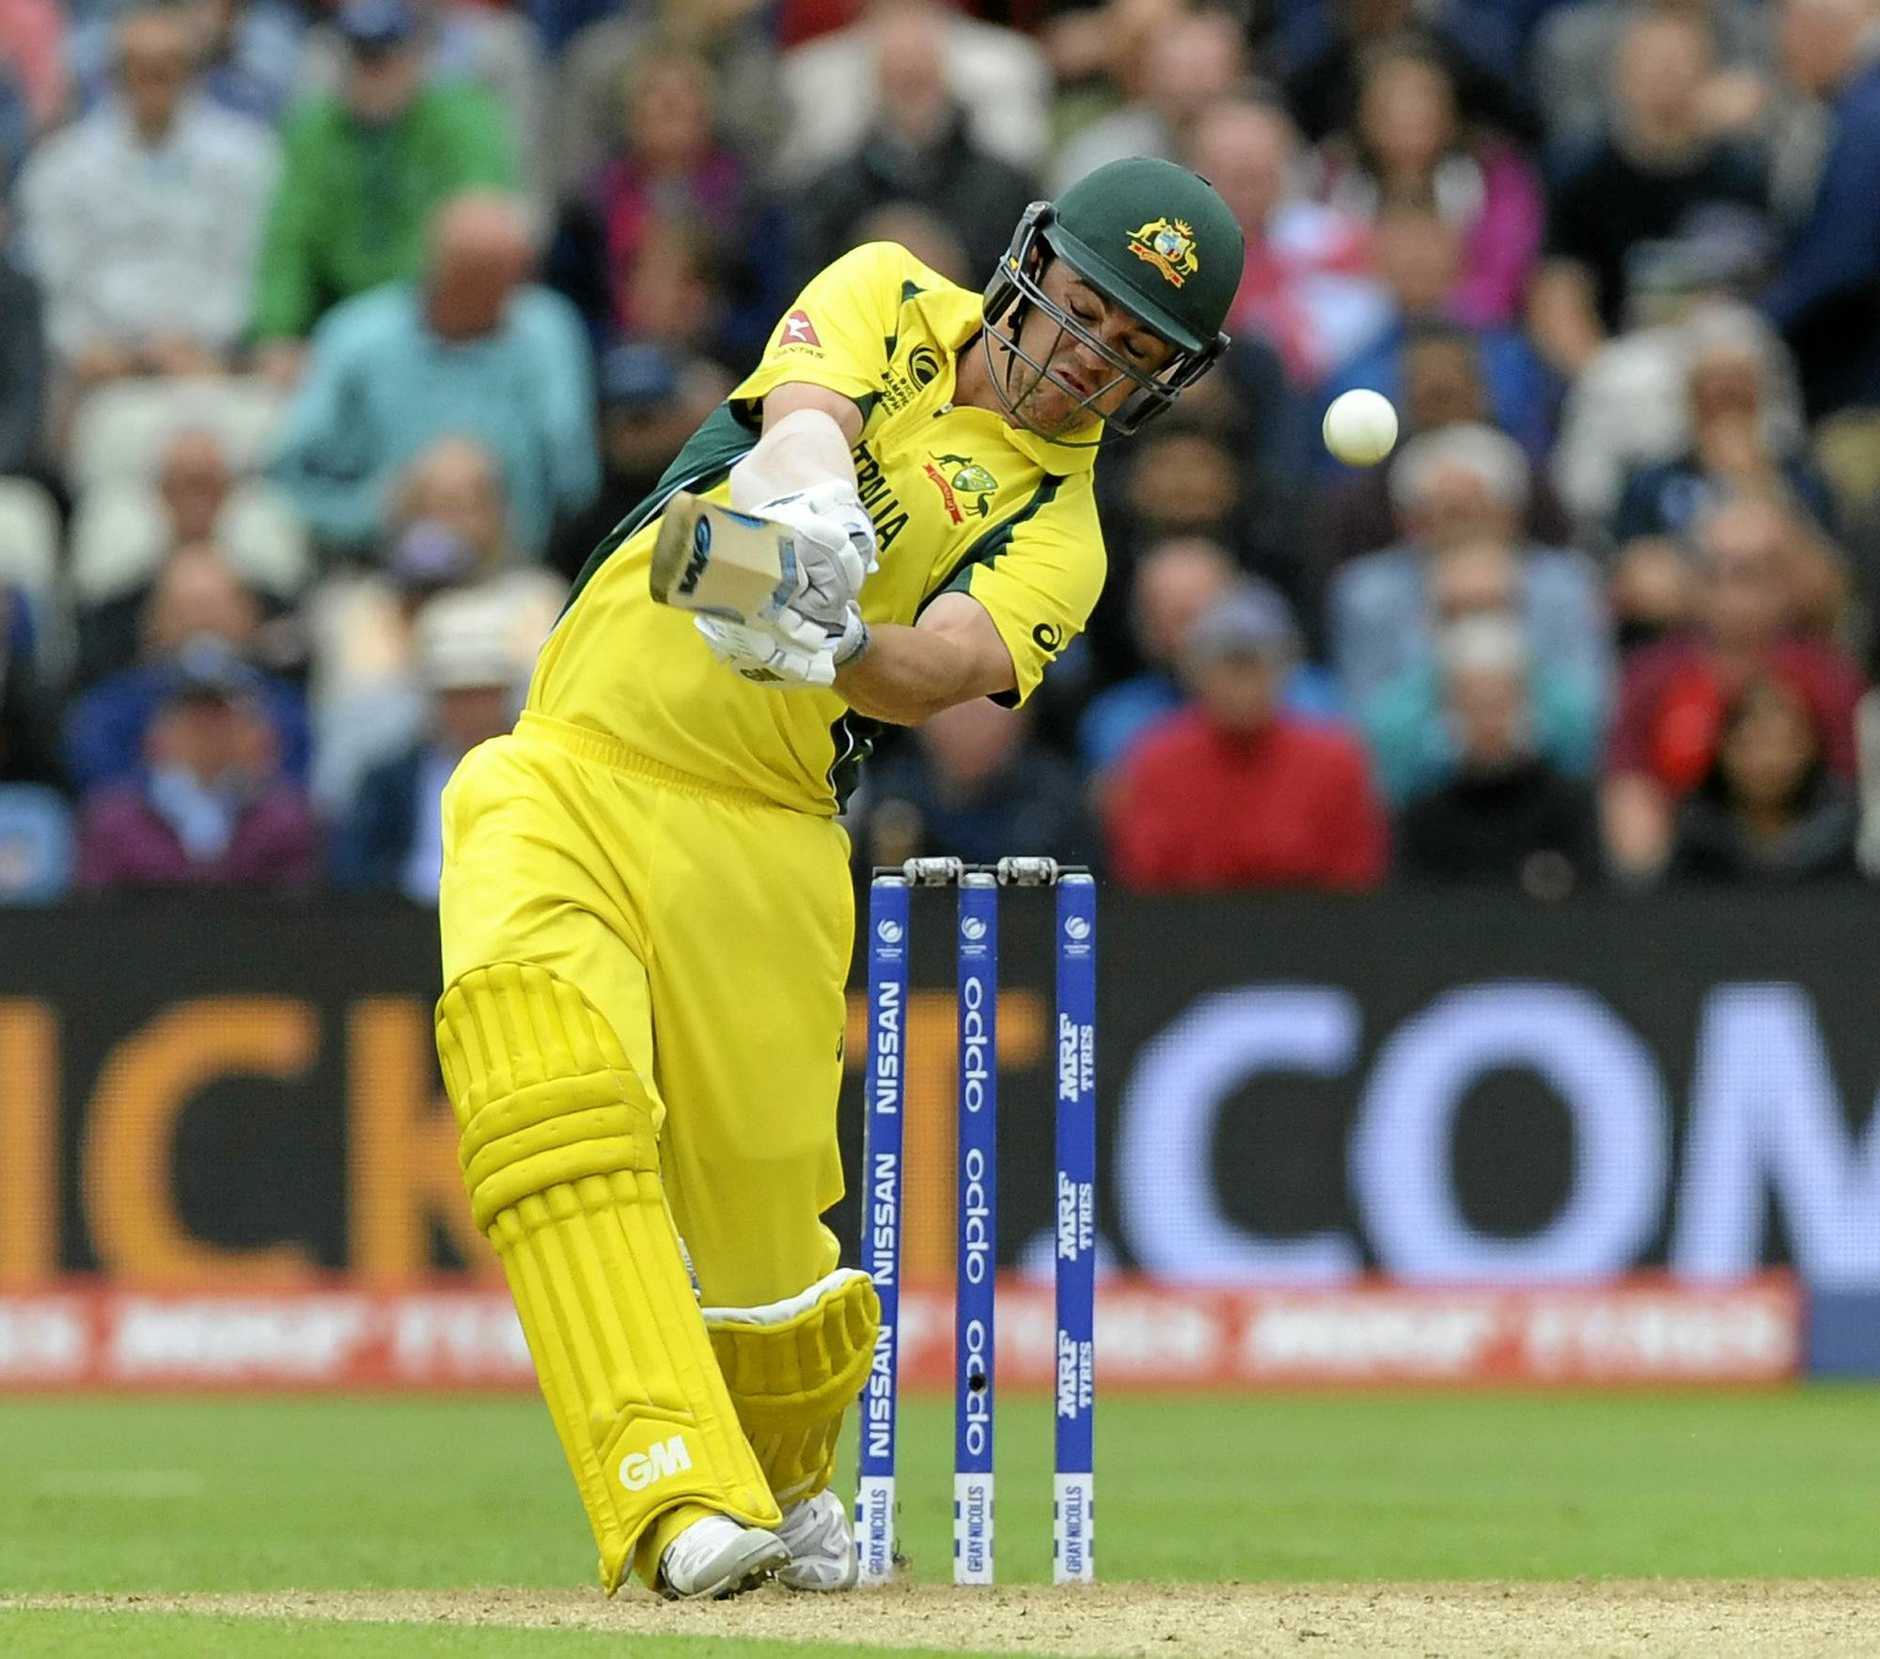 Australia's Travis Head plays a shot during the ICC Champions Trophy match against England at Edgbaston in Birmingham.